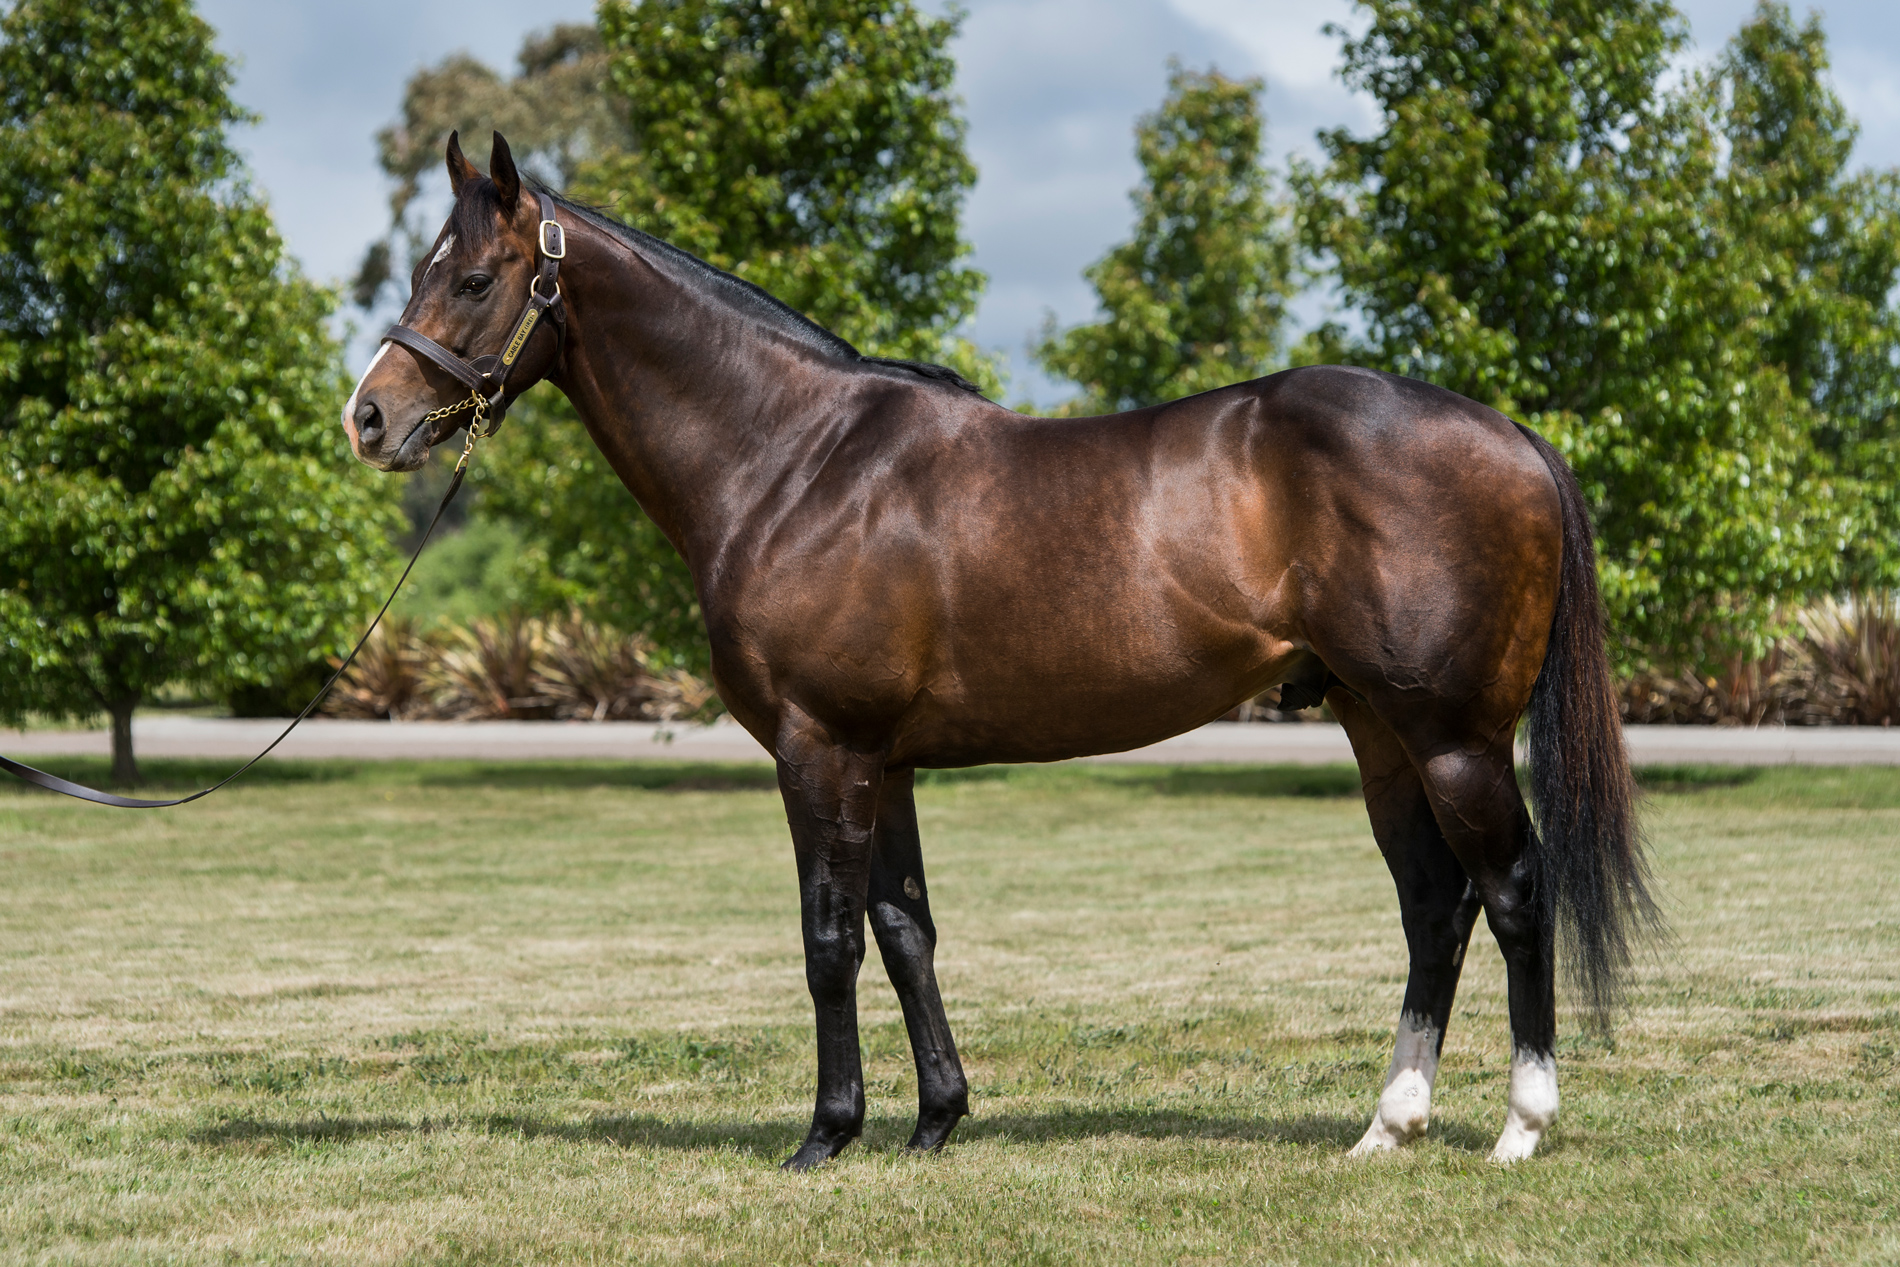 http://www.stallions.com.au/wp-content/uploads/2019/10/Cable-Bay_High-Res_Conformation.jpg